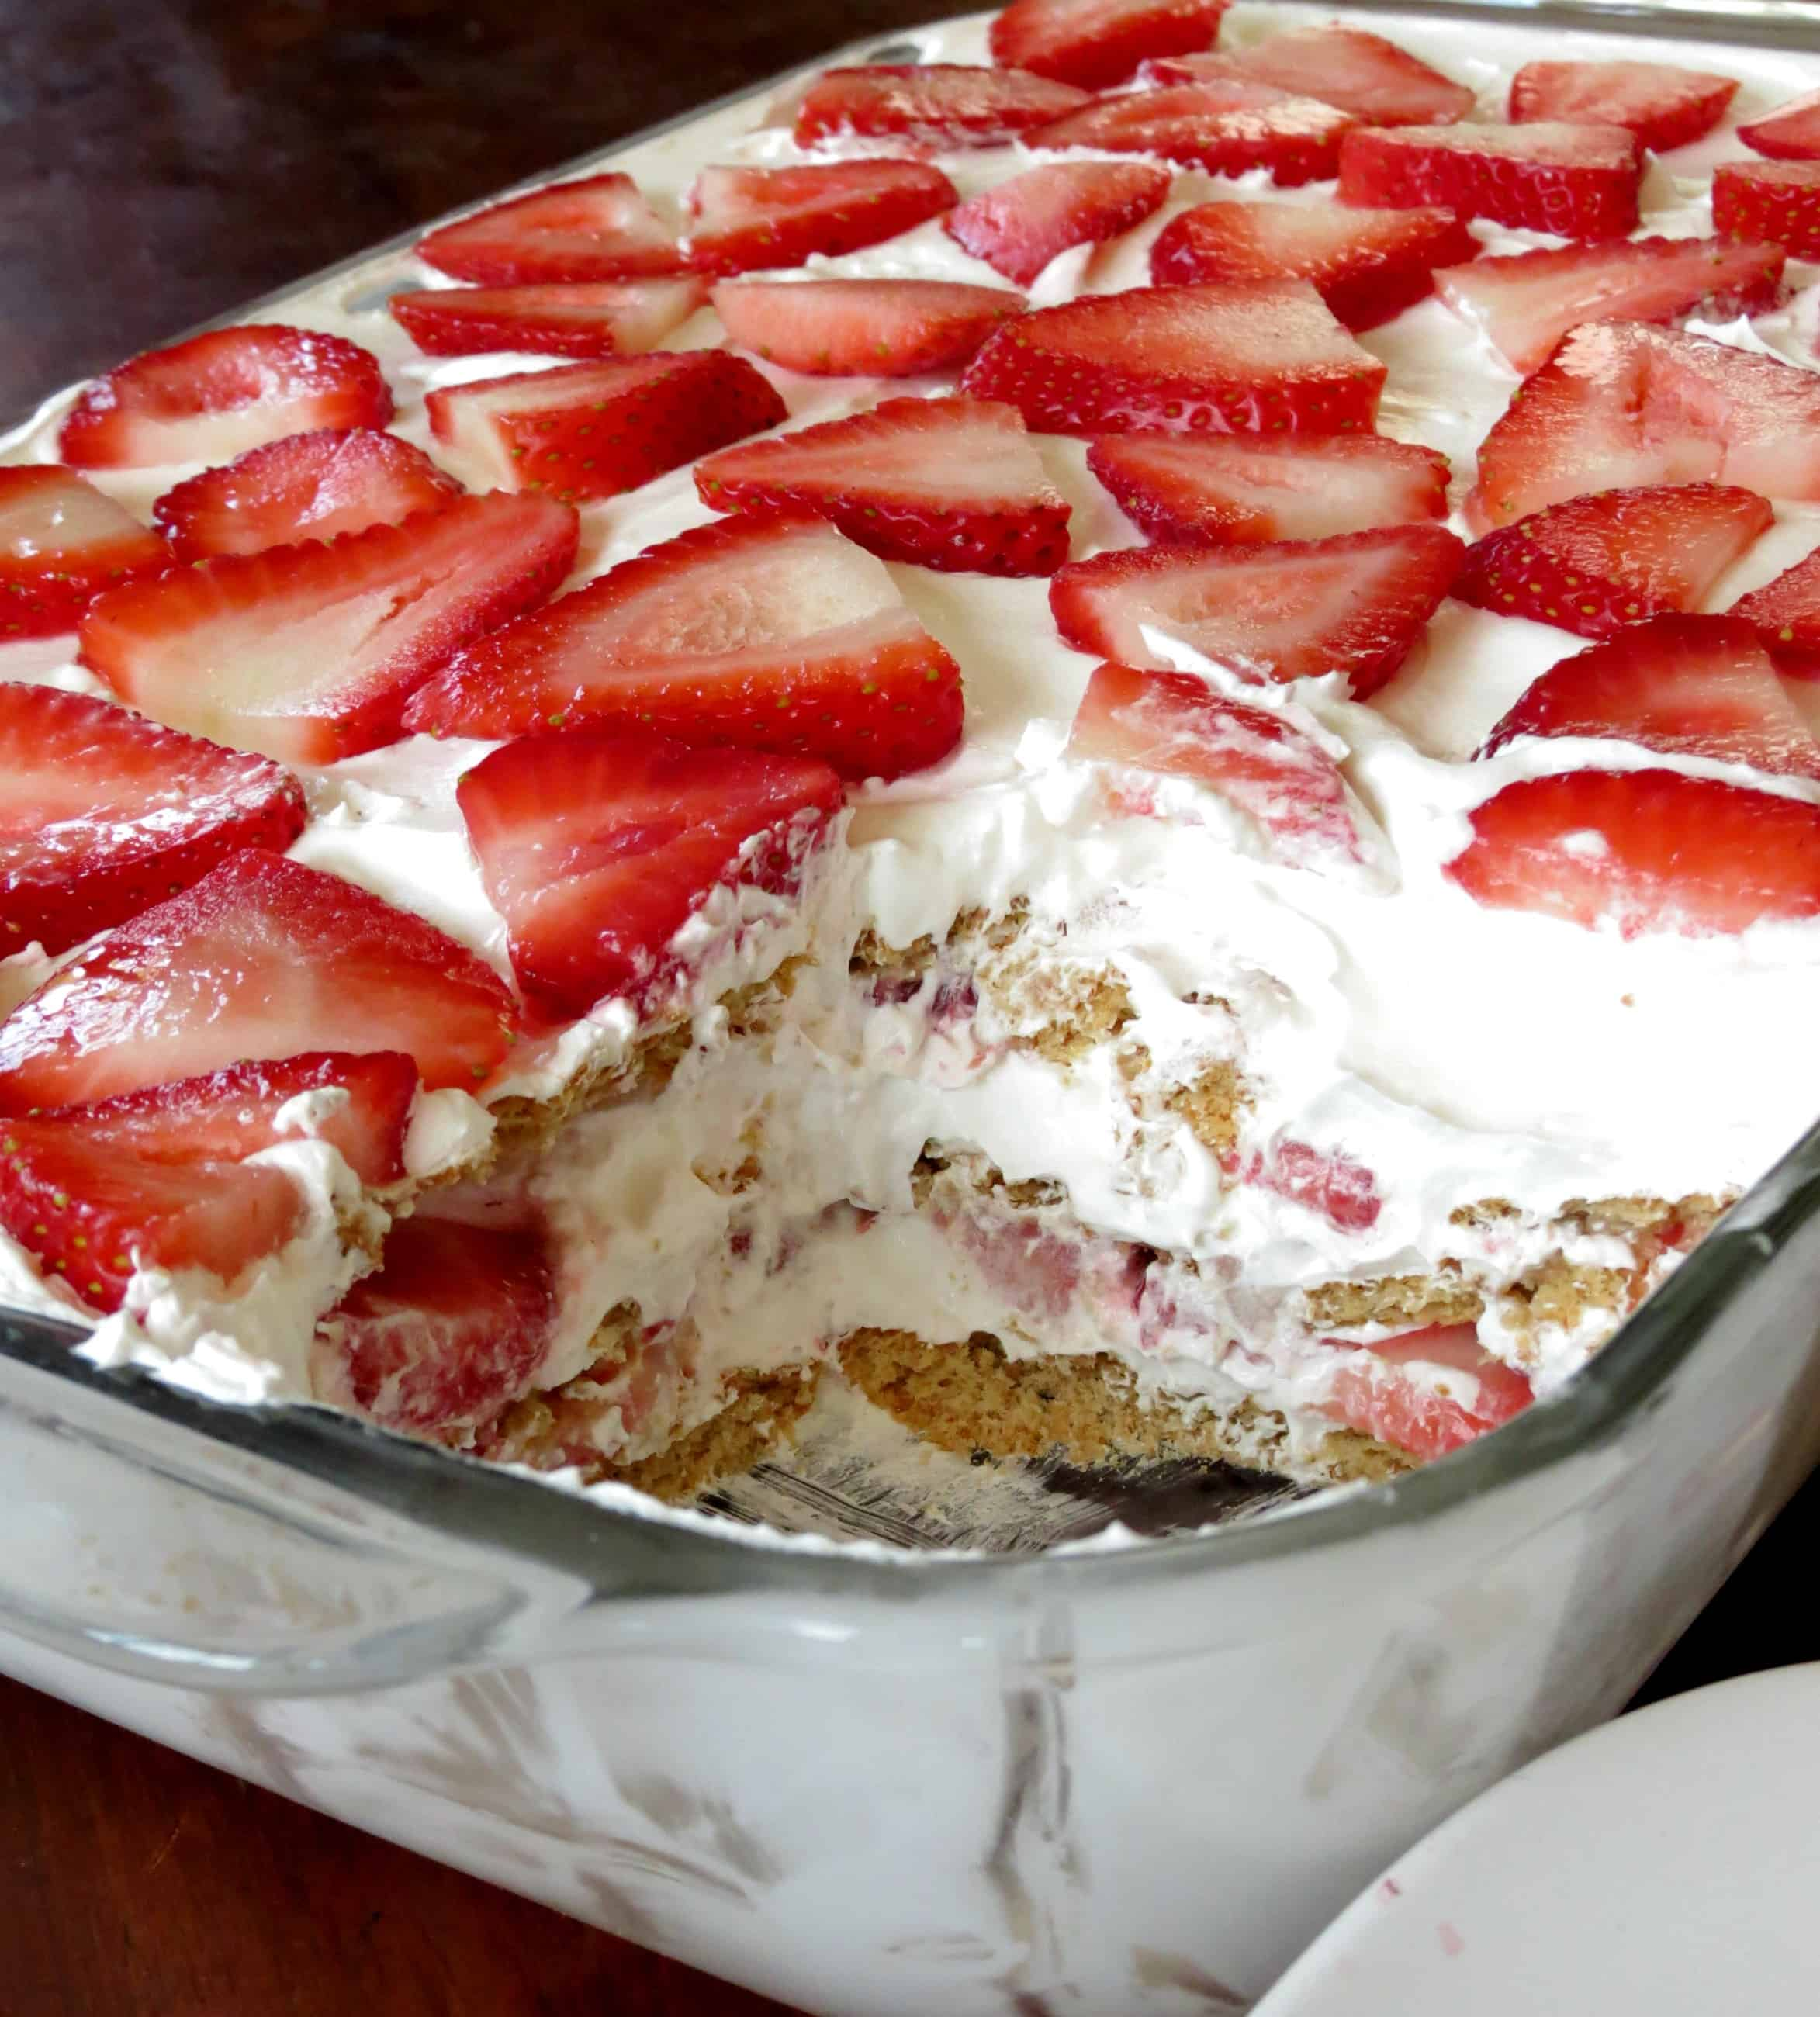 Strawberry Shortcake Recipe With Cream Cheese And Angel Food Cake